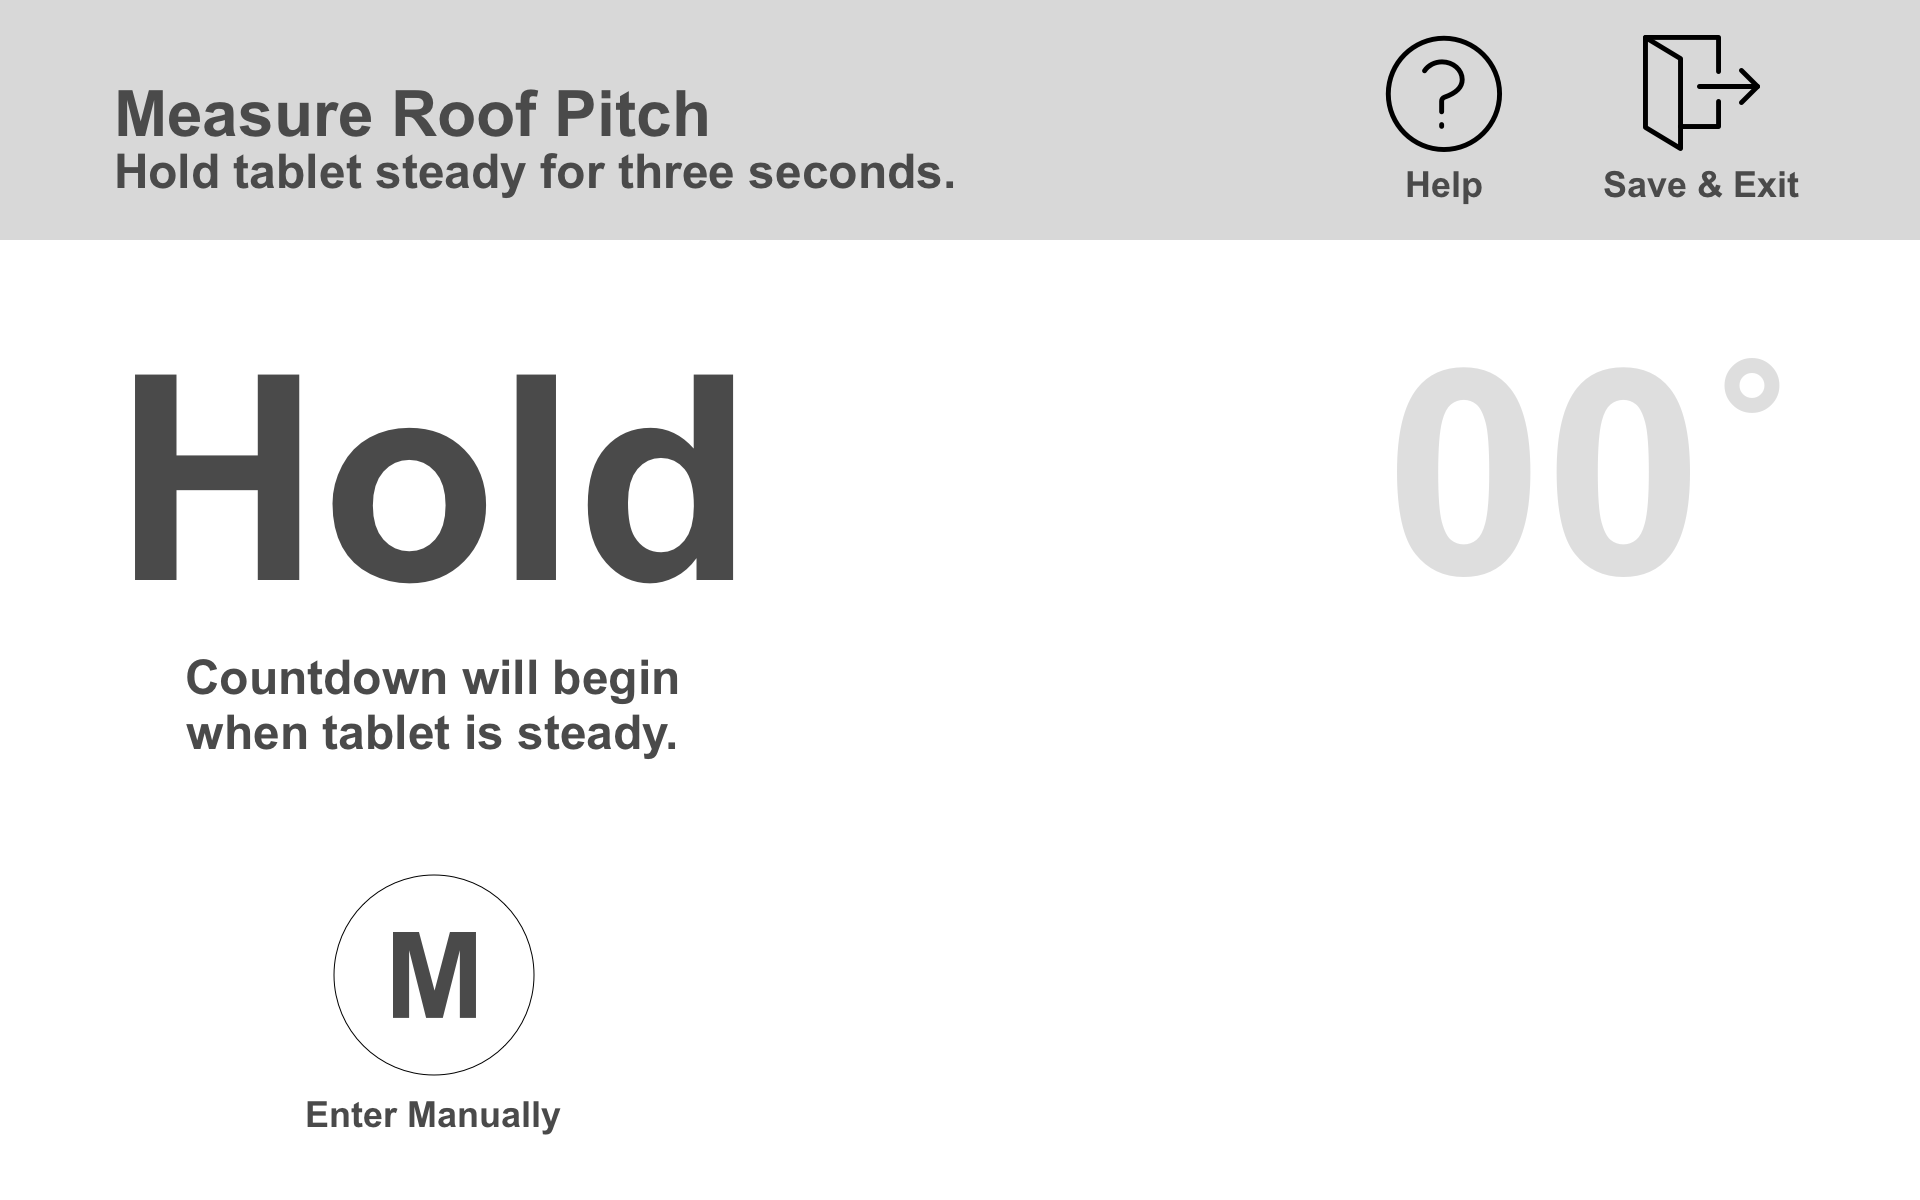 4.0.0_Structural_Roof_Pitch-Hold.png